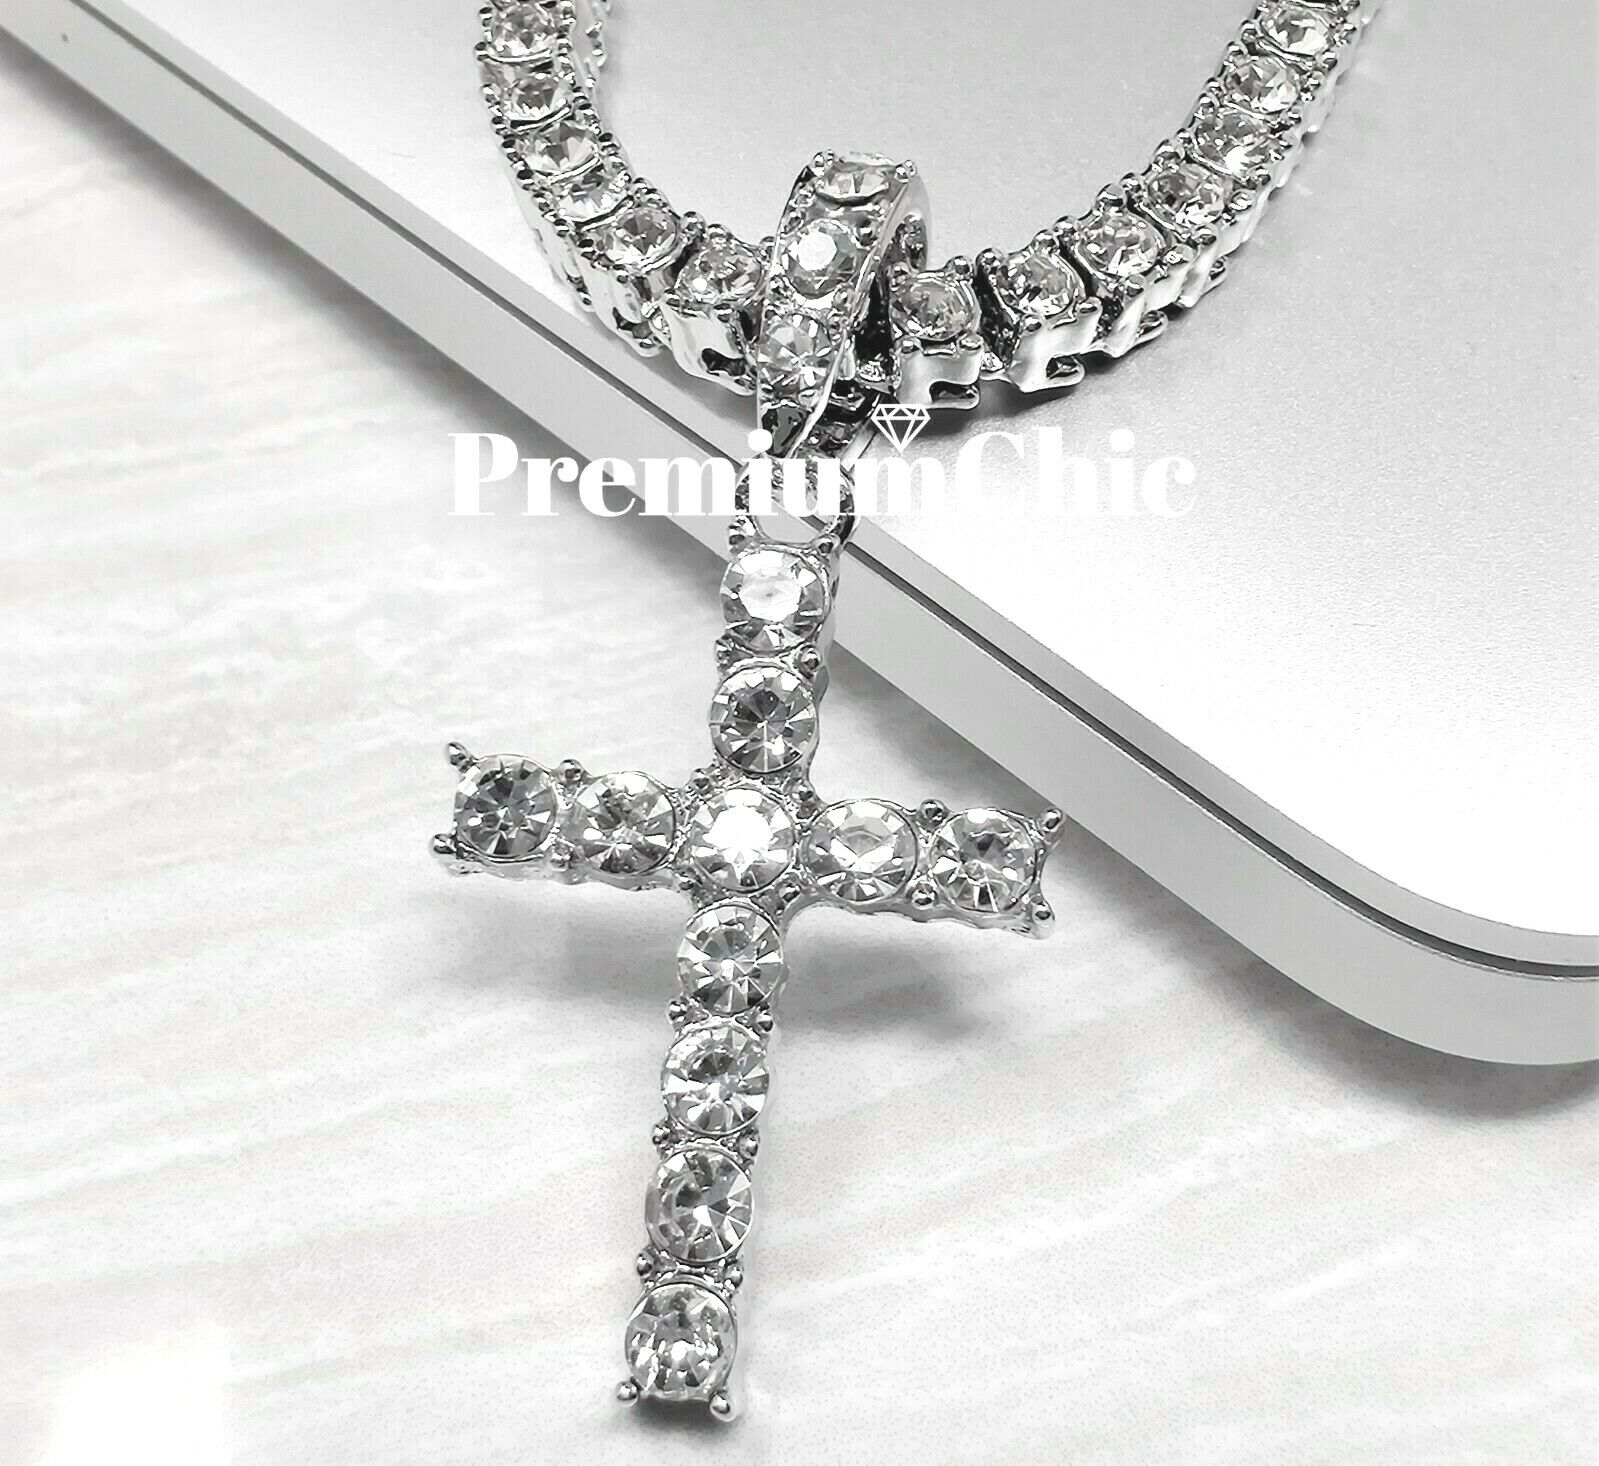 ICED Cross Pendant & Tennis Chain Choker Gold Silver Plated Mens HipHop Necklace